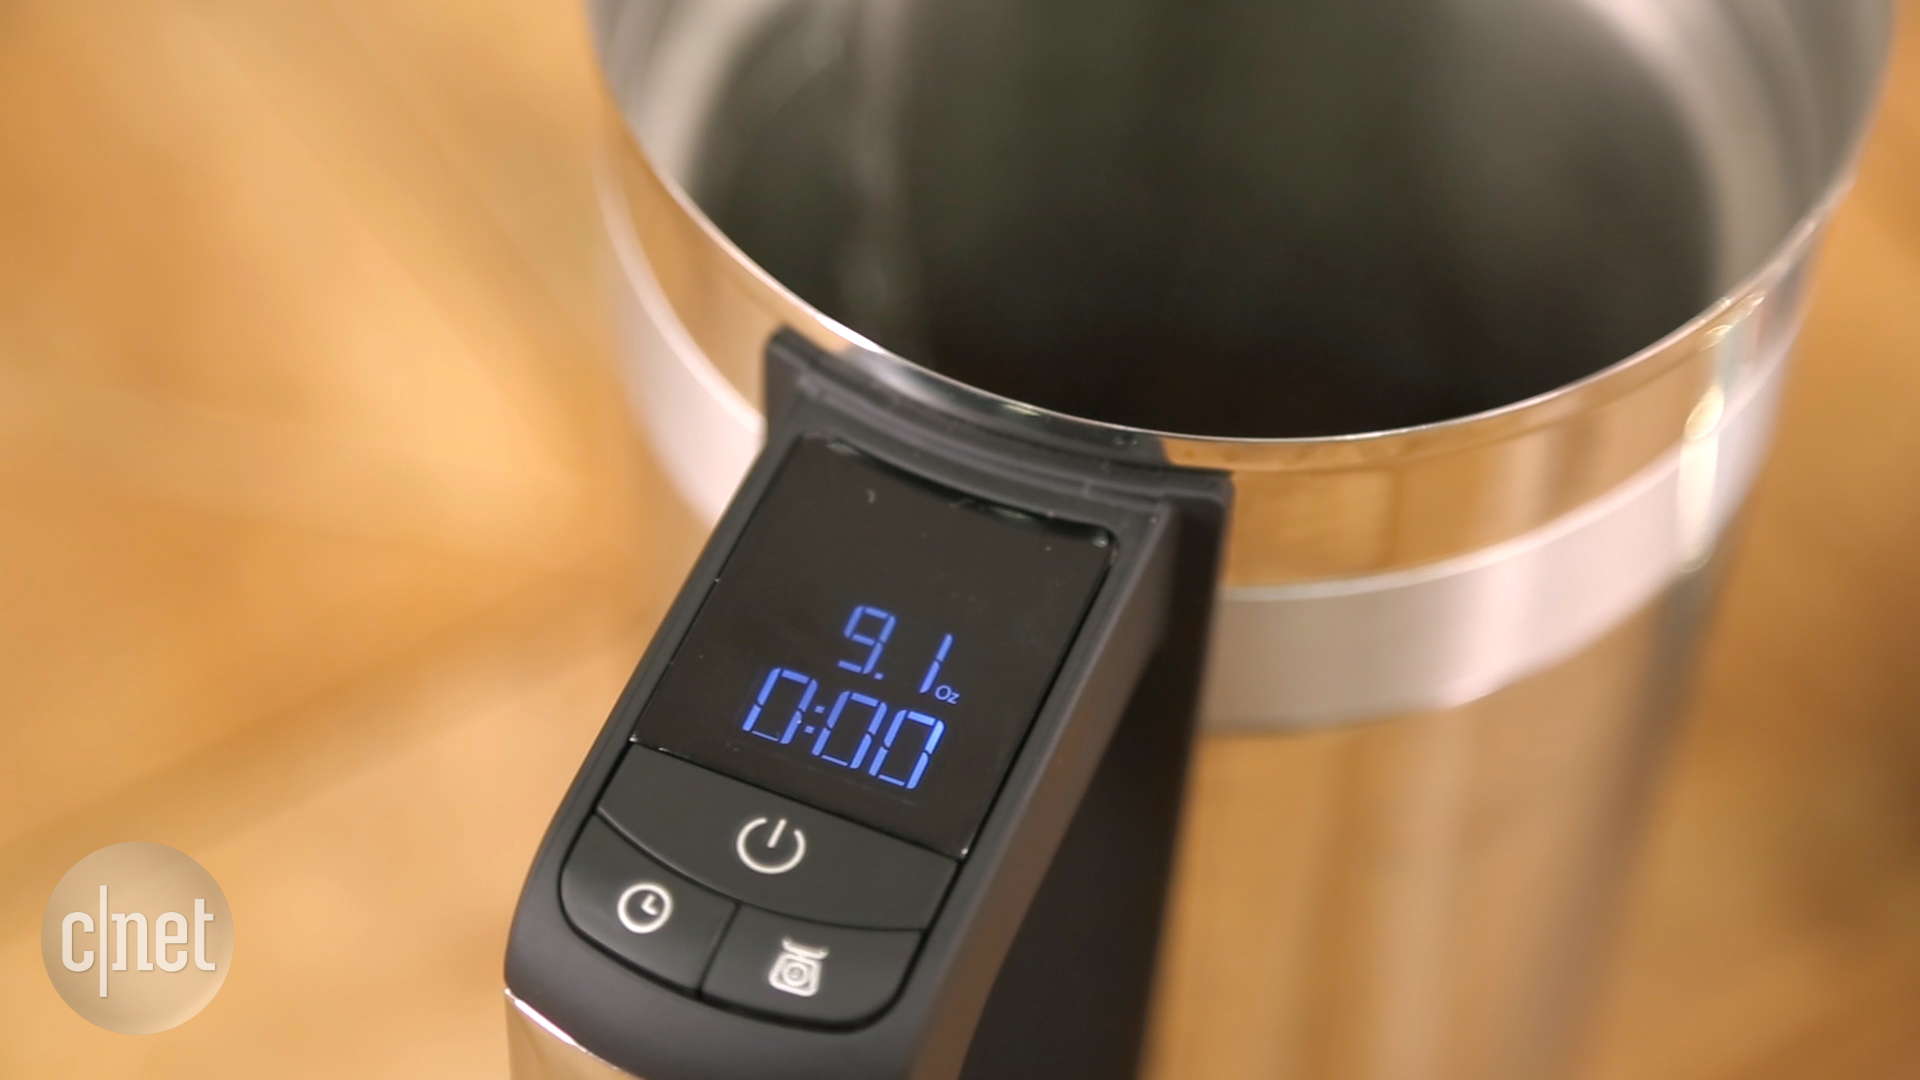 Video: KitchenAid's Precision Press coffee maker sports a built-in scale for accuracy